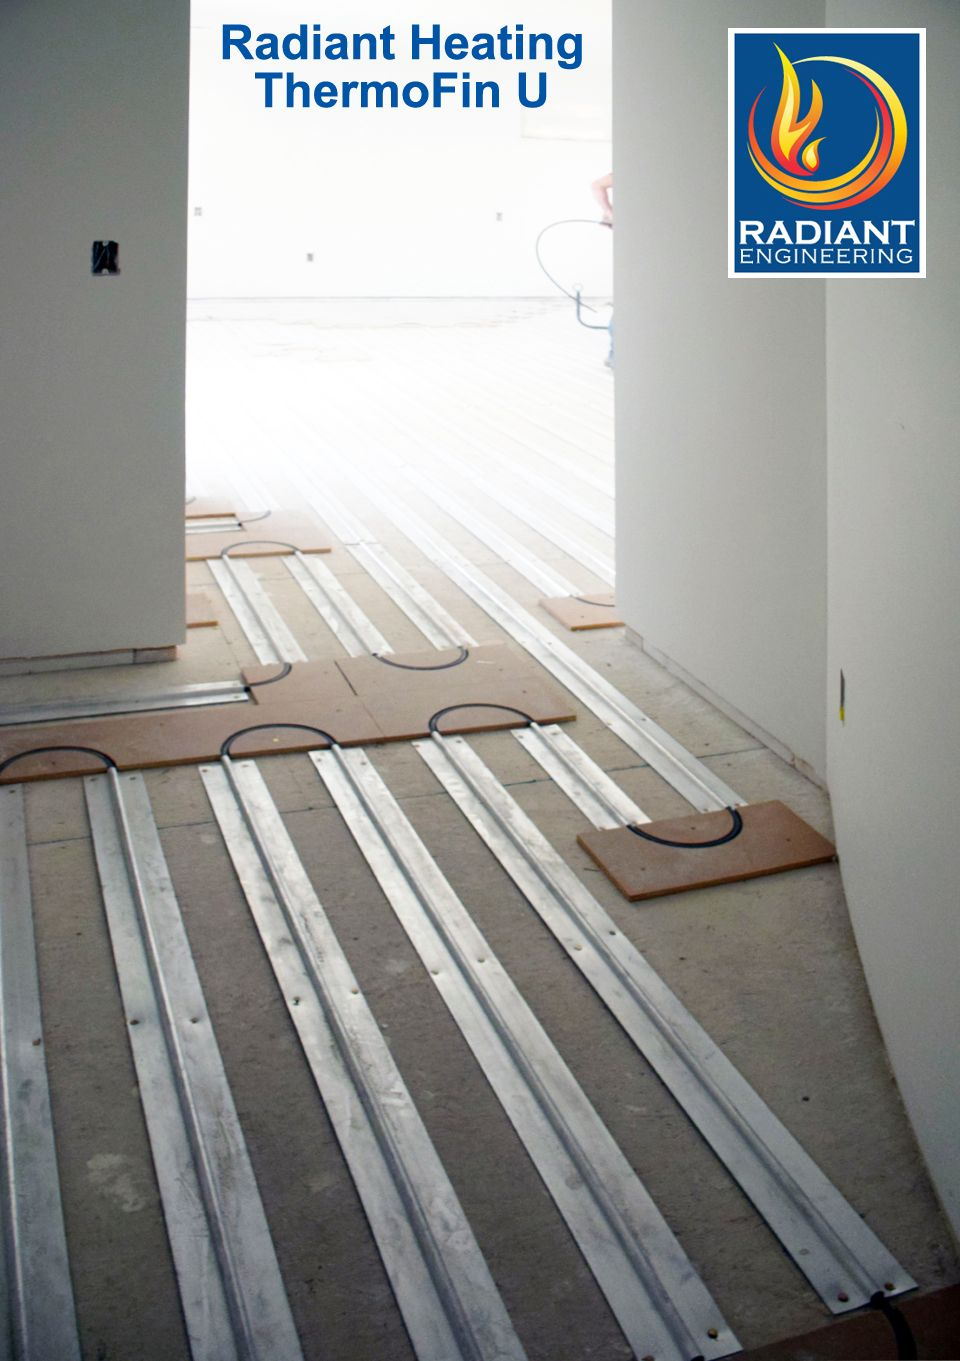 Radiant Heating With Thermofin U Extruded Aluminum Heat Transfer Plates Patented And Manufactured By Radiant Engineering Inc Bozeman Montana Our Customers